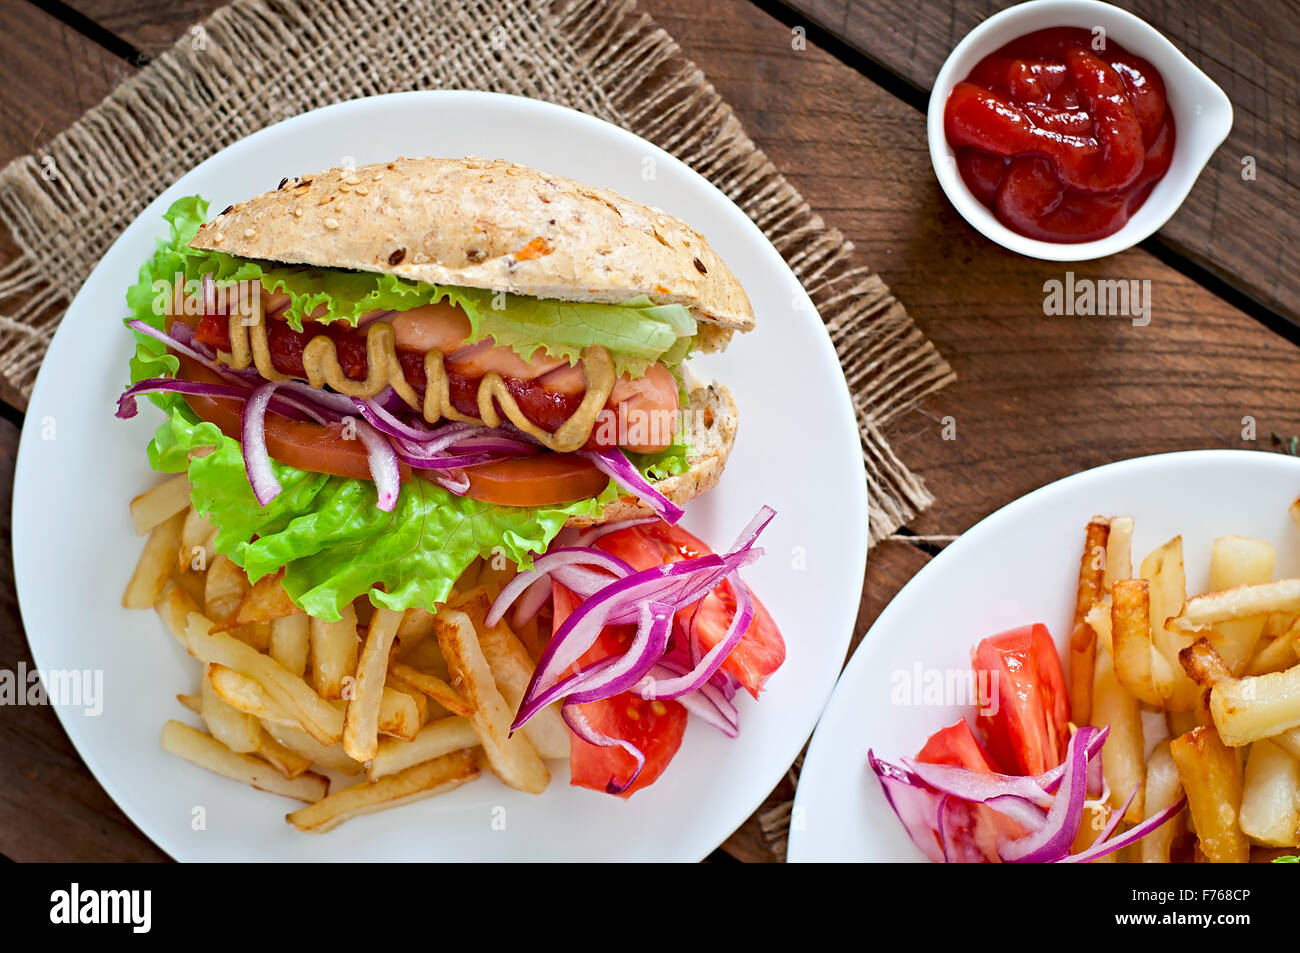 Hot Dogs - sandwich with French fries on white plate - Stock Image